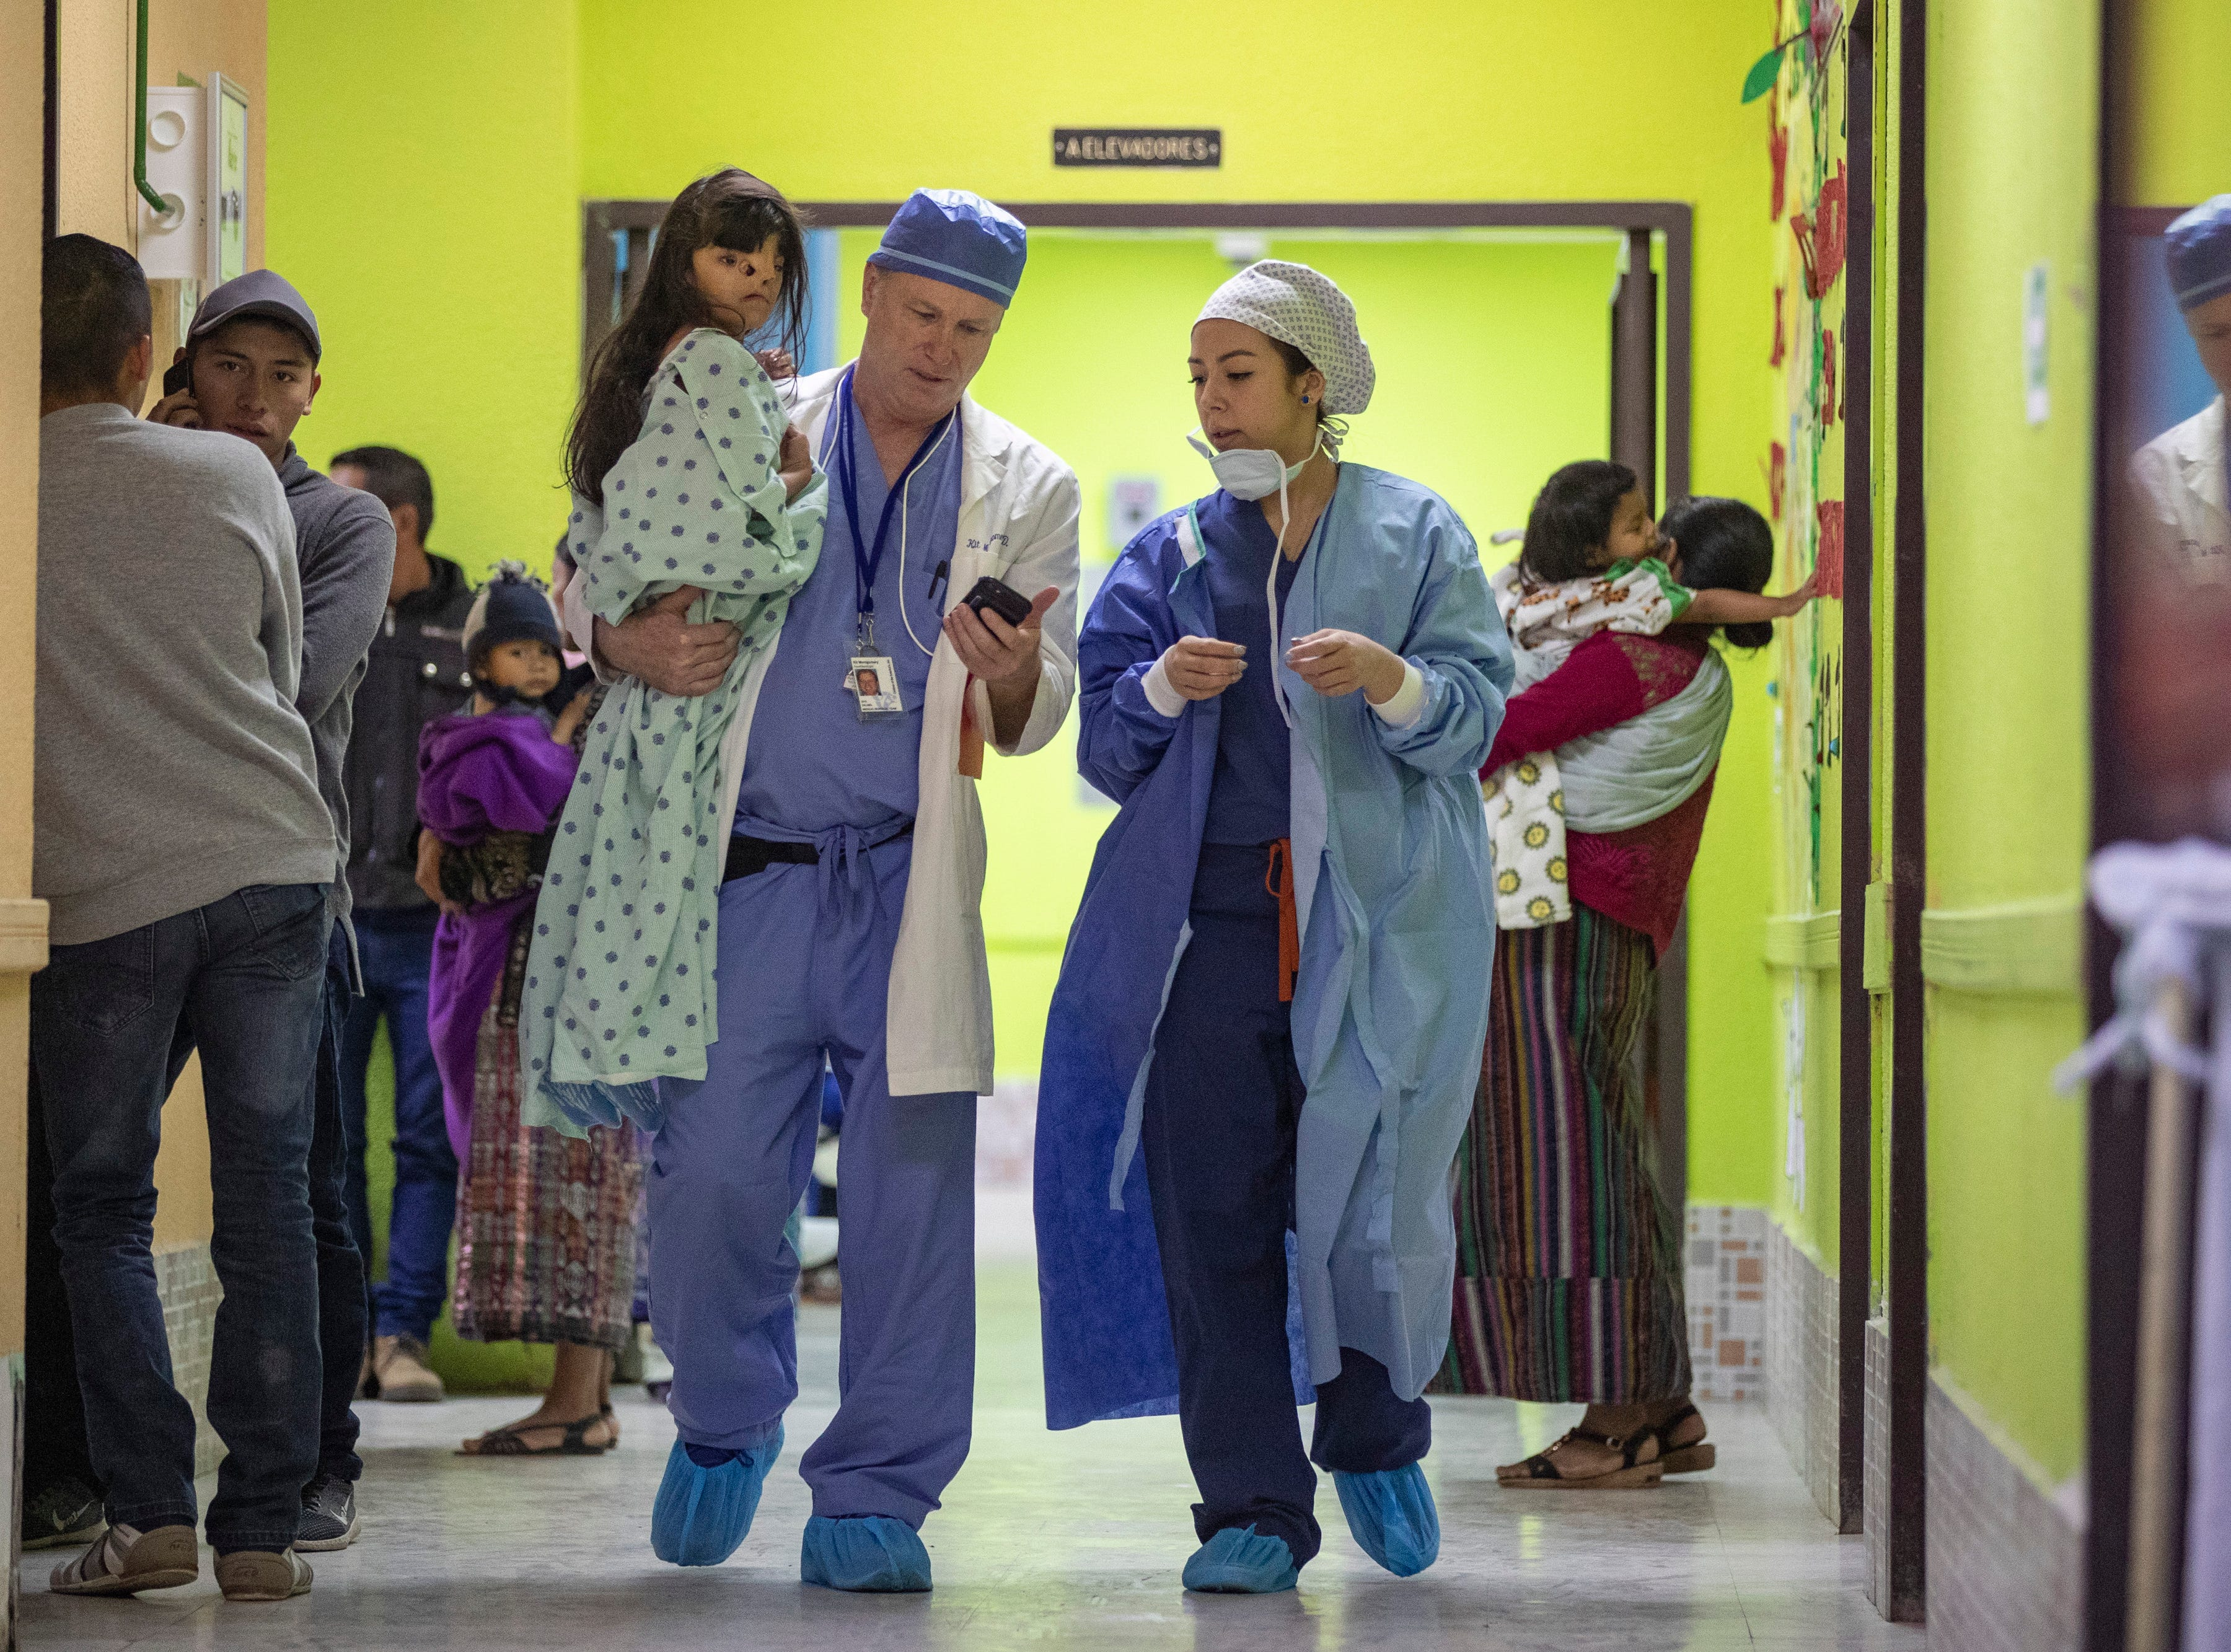 Lexington, Kentucky's Shriner's Hospitals' director of anesthesia, Dr. Kit Montgomery, left, carries Evany Puac, 6, to receive her second plastic surgery to reconstruct her face after being born with a severe facial bilateral cleft as Brooklyn's Midtown Surgery Center's Jessica Parra looks on. Jan. 22, 2019